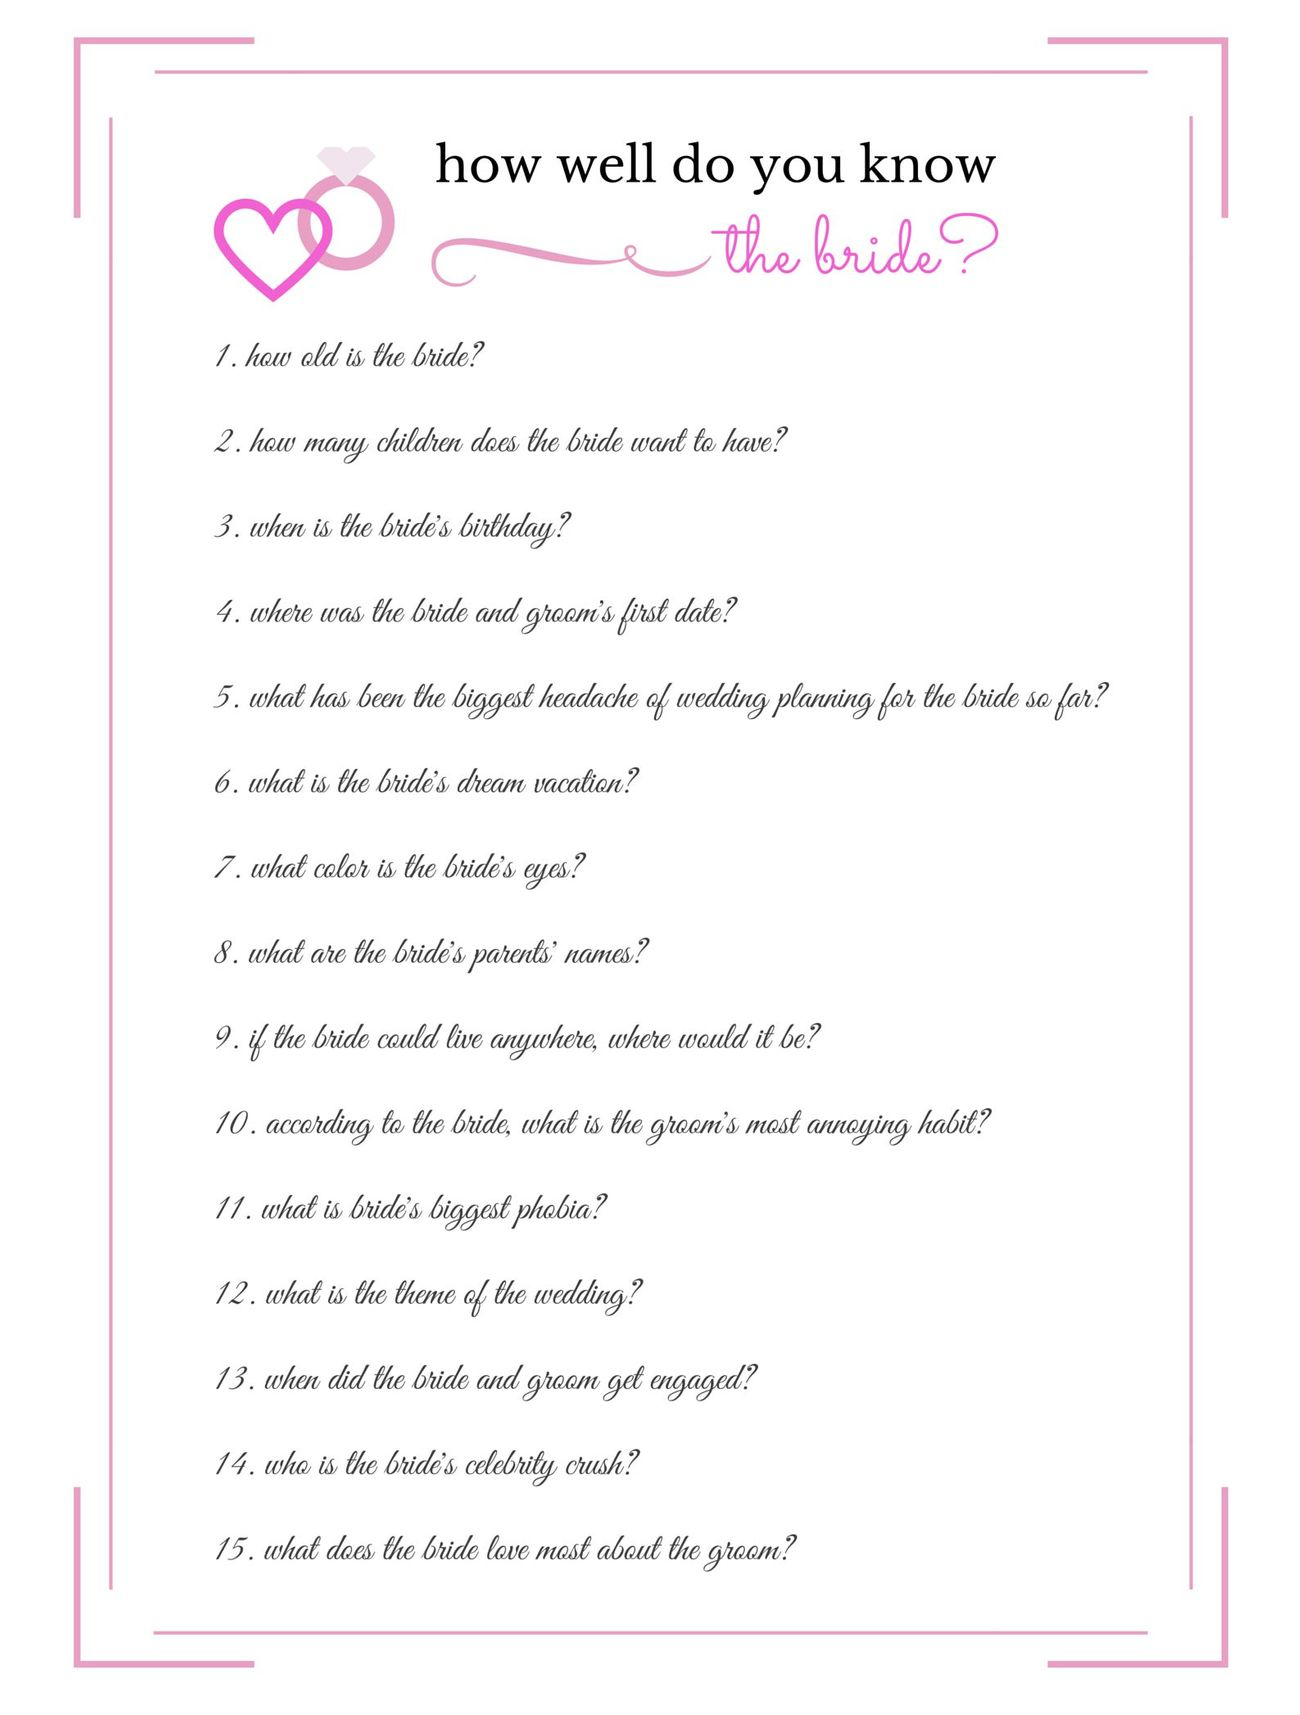 how-well-do-you-know-the-bride-questions